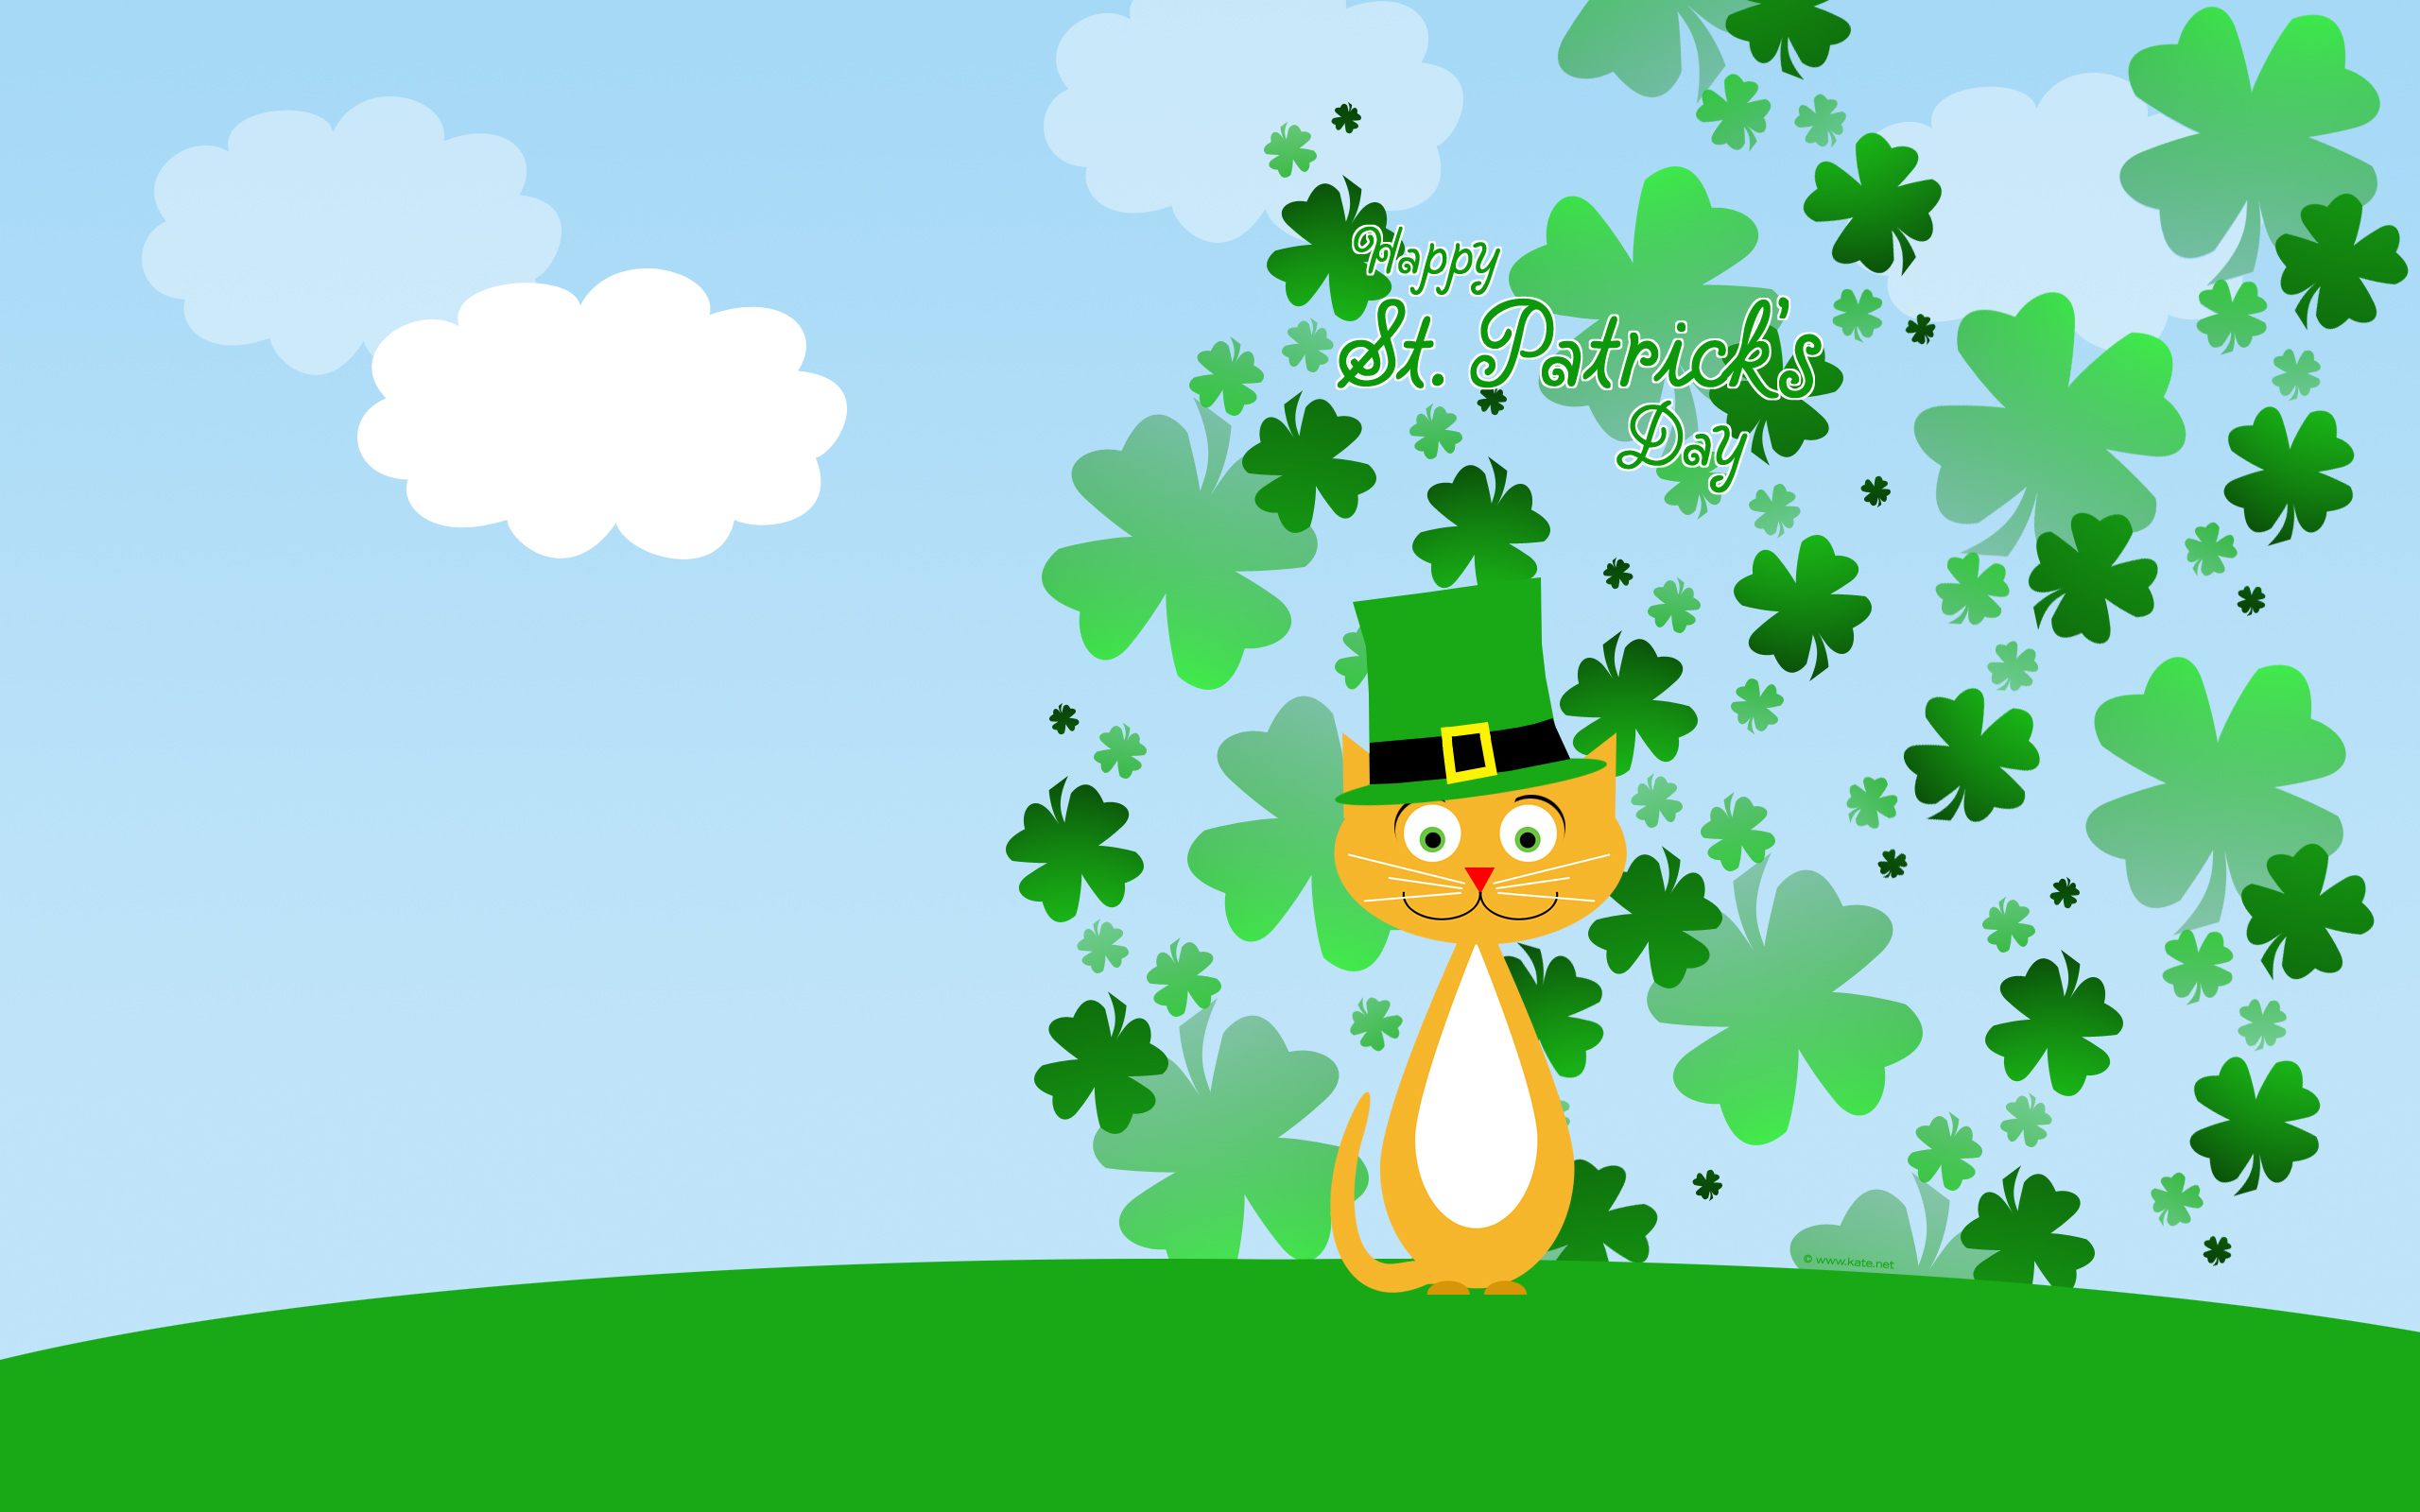 patricks day shamrock background-#34